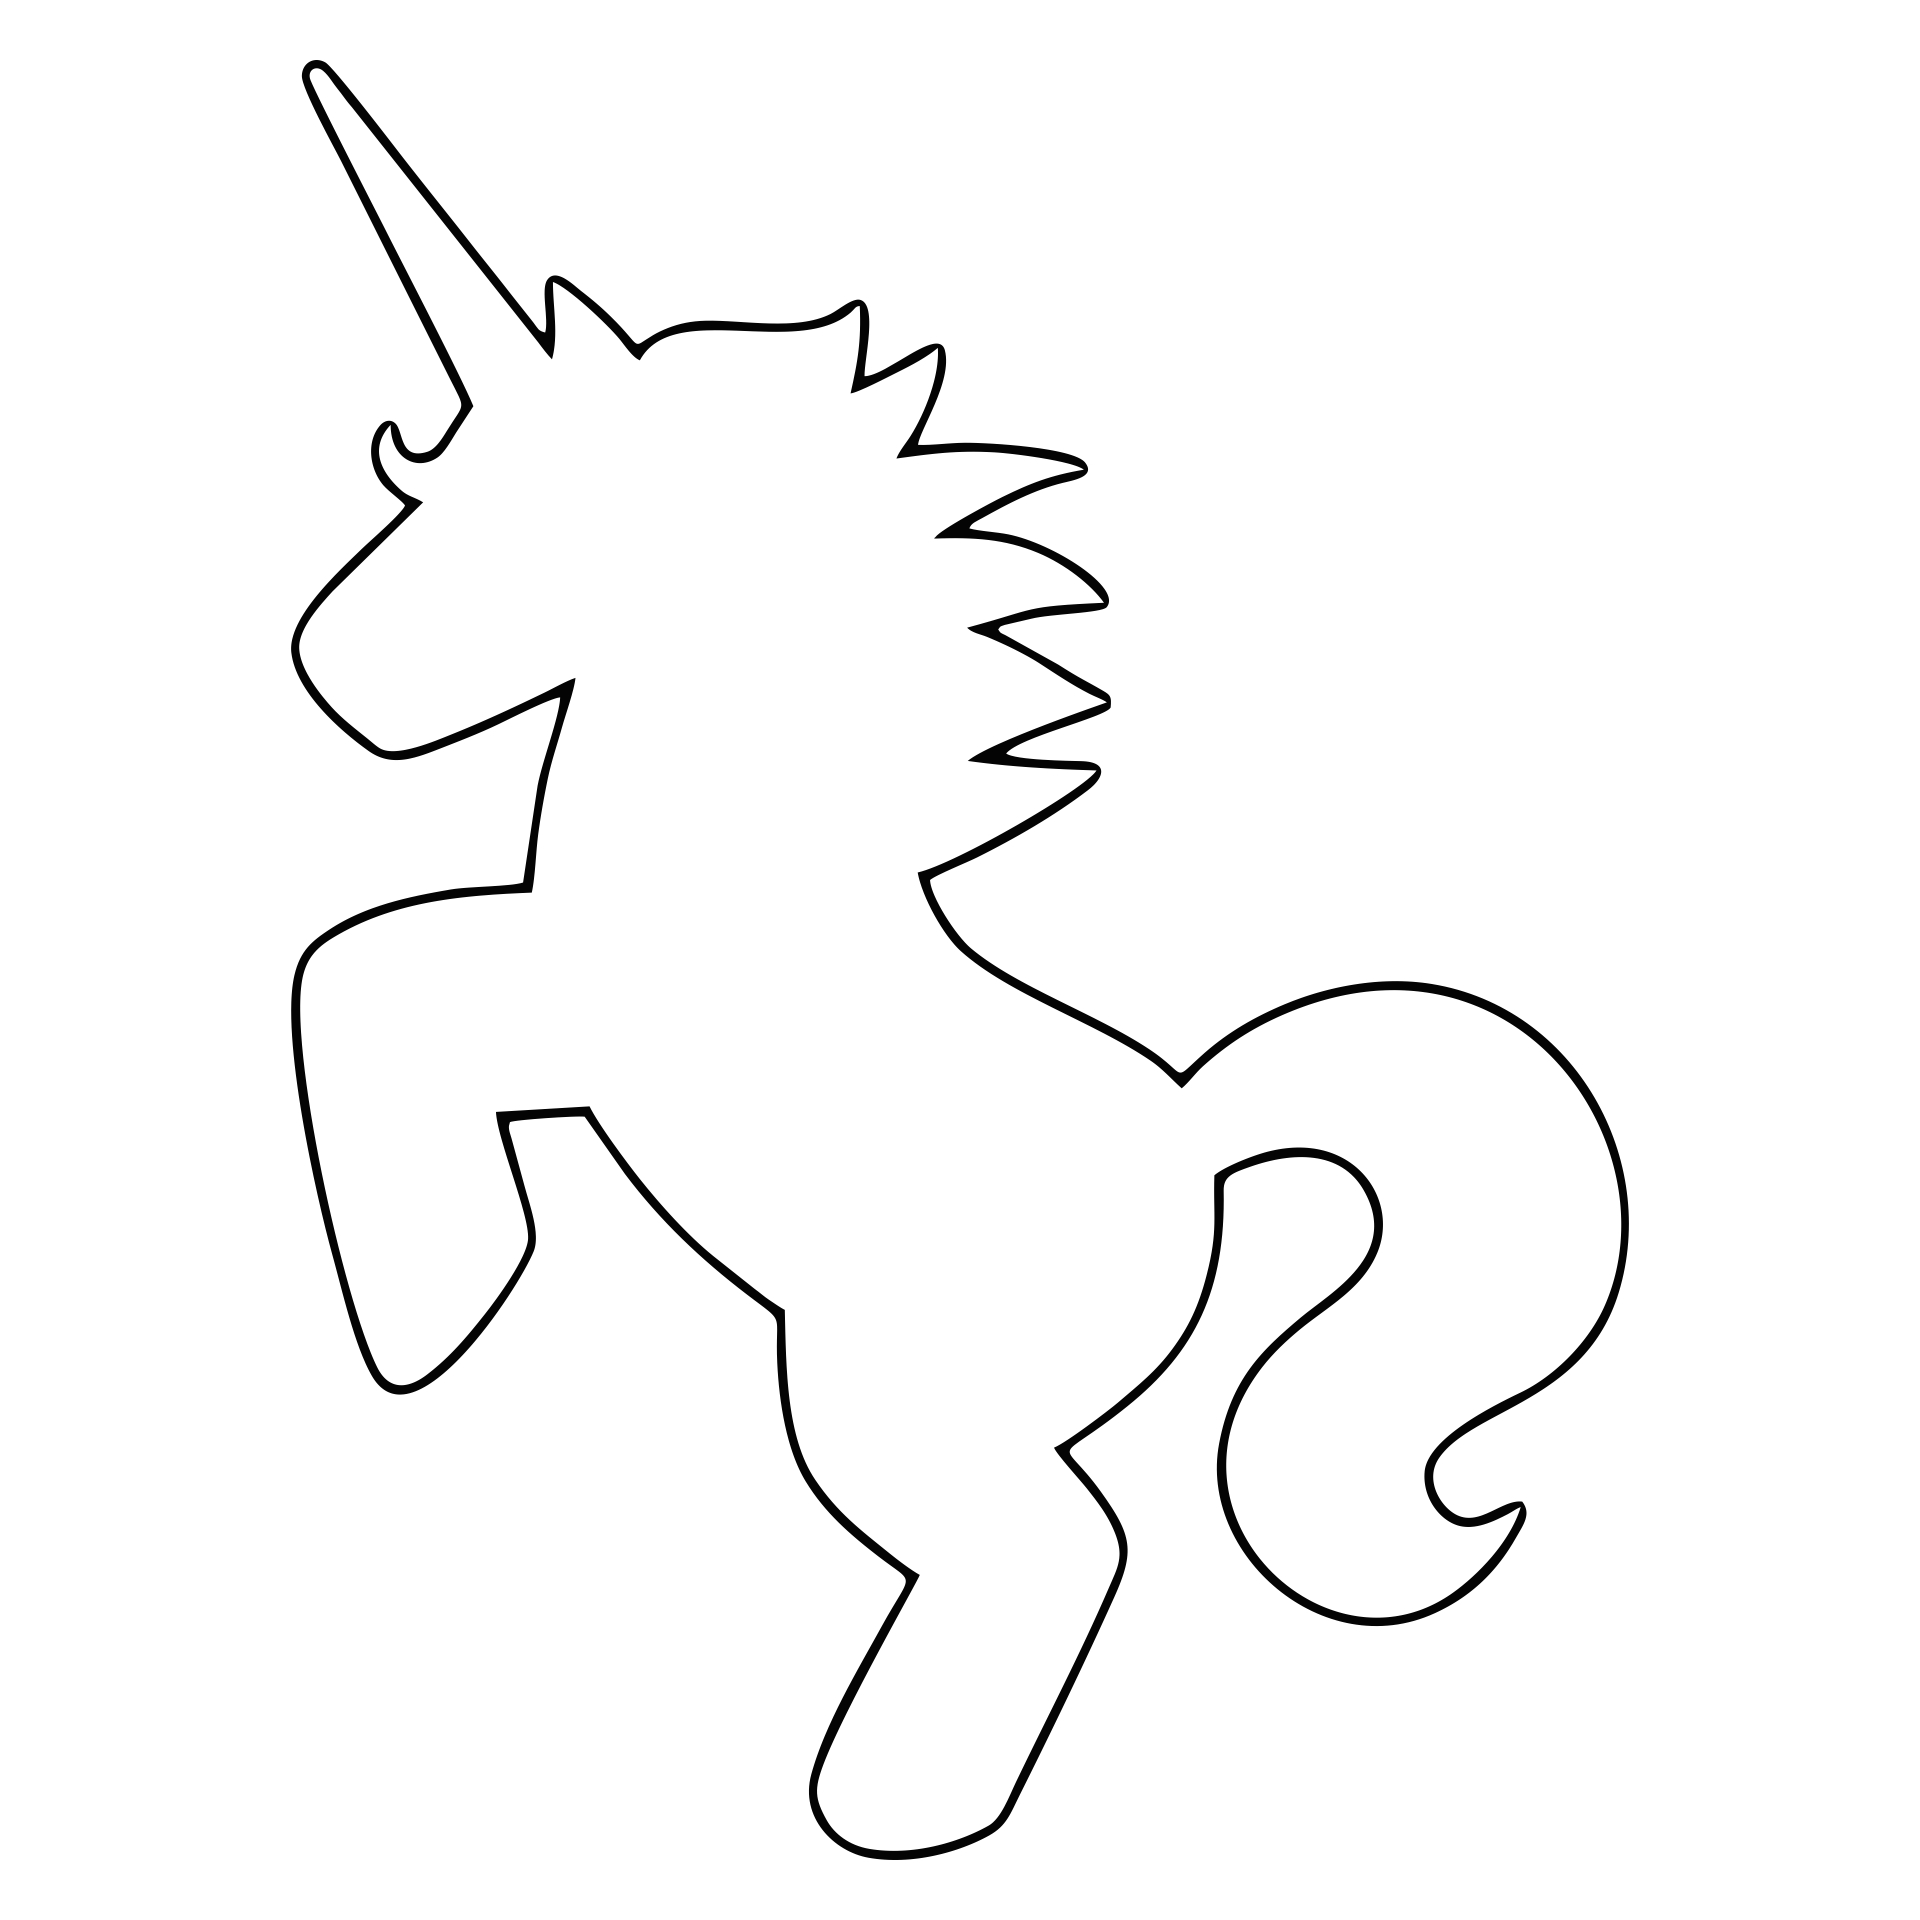 5 Images of Unicorn Stencils Free Printable